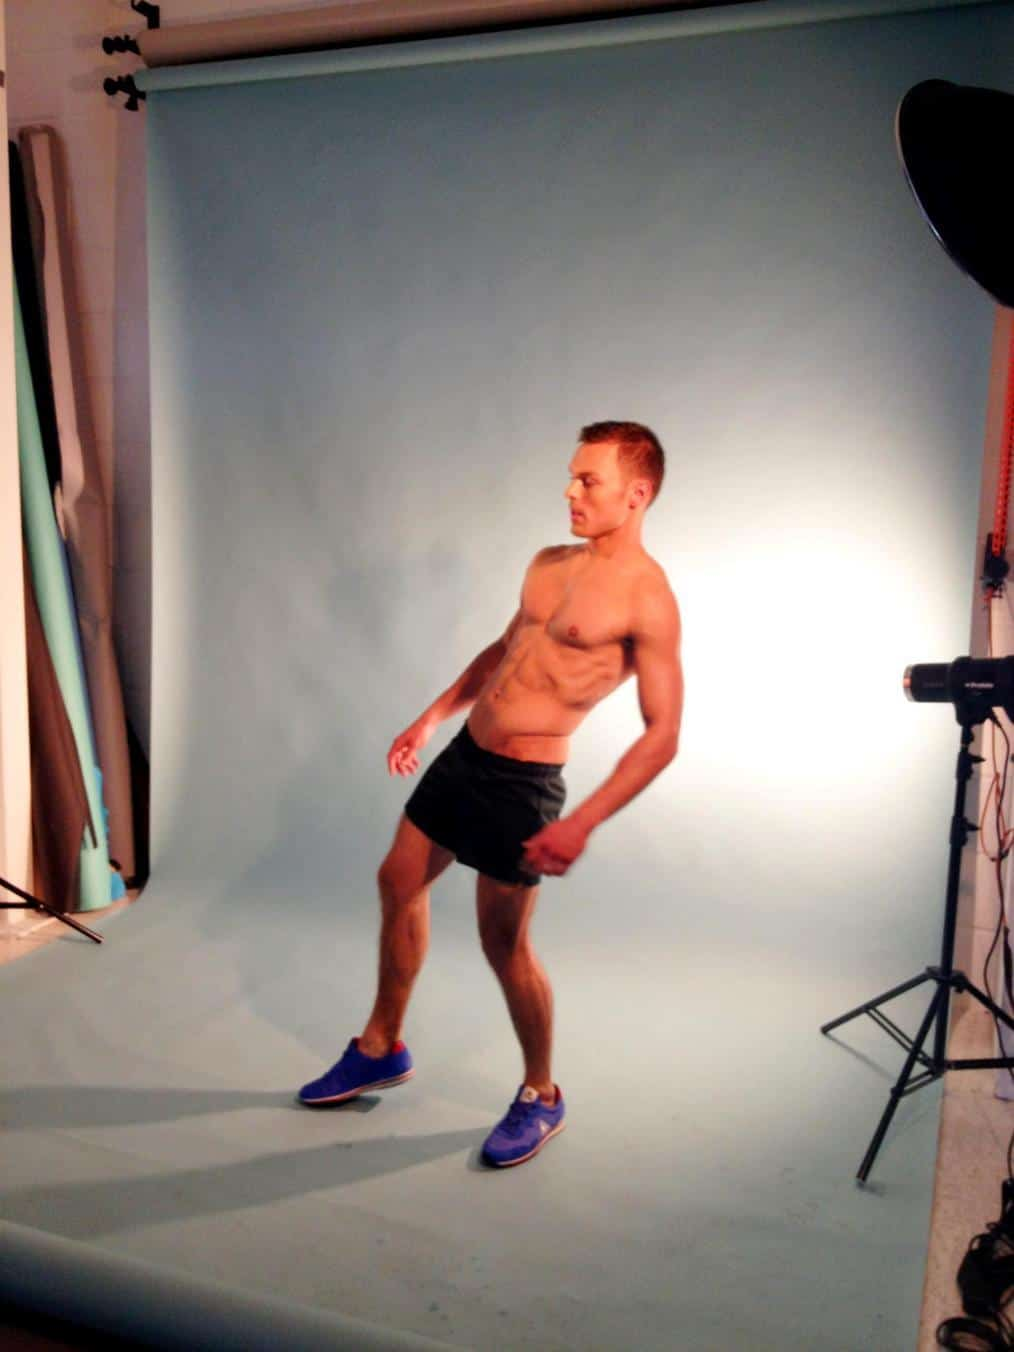 Andrew Hayden Smith In Underwear